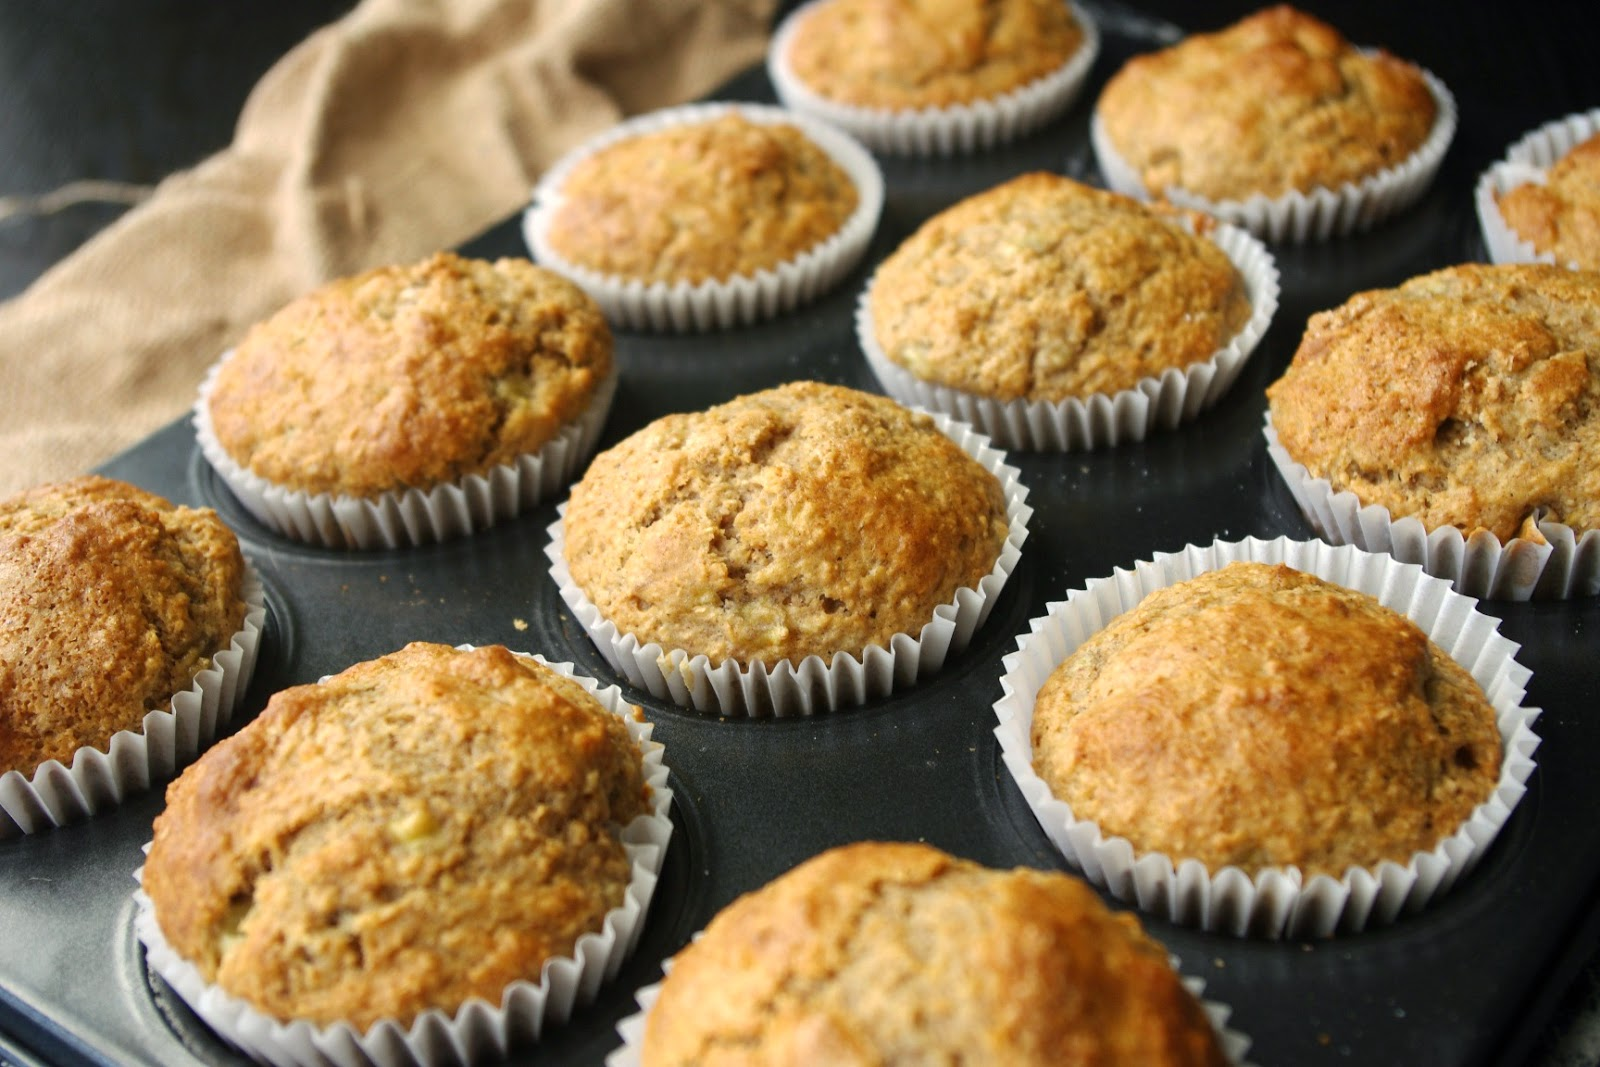 Banana, maple syrup and cinnamon muffins photo